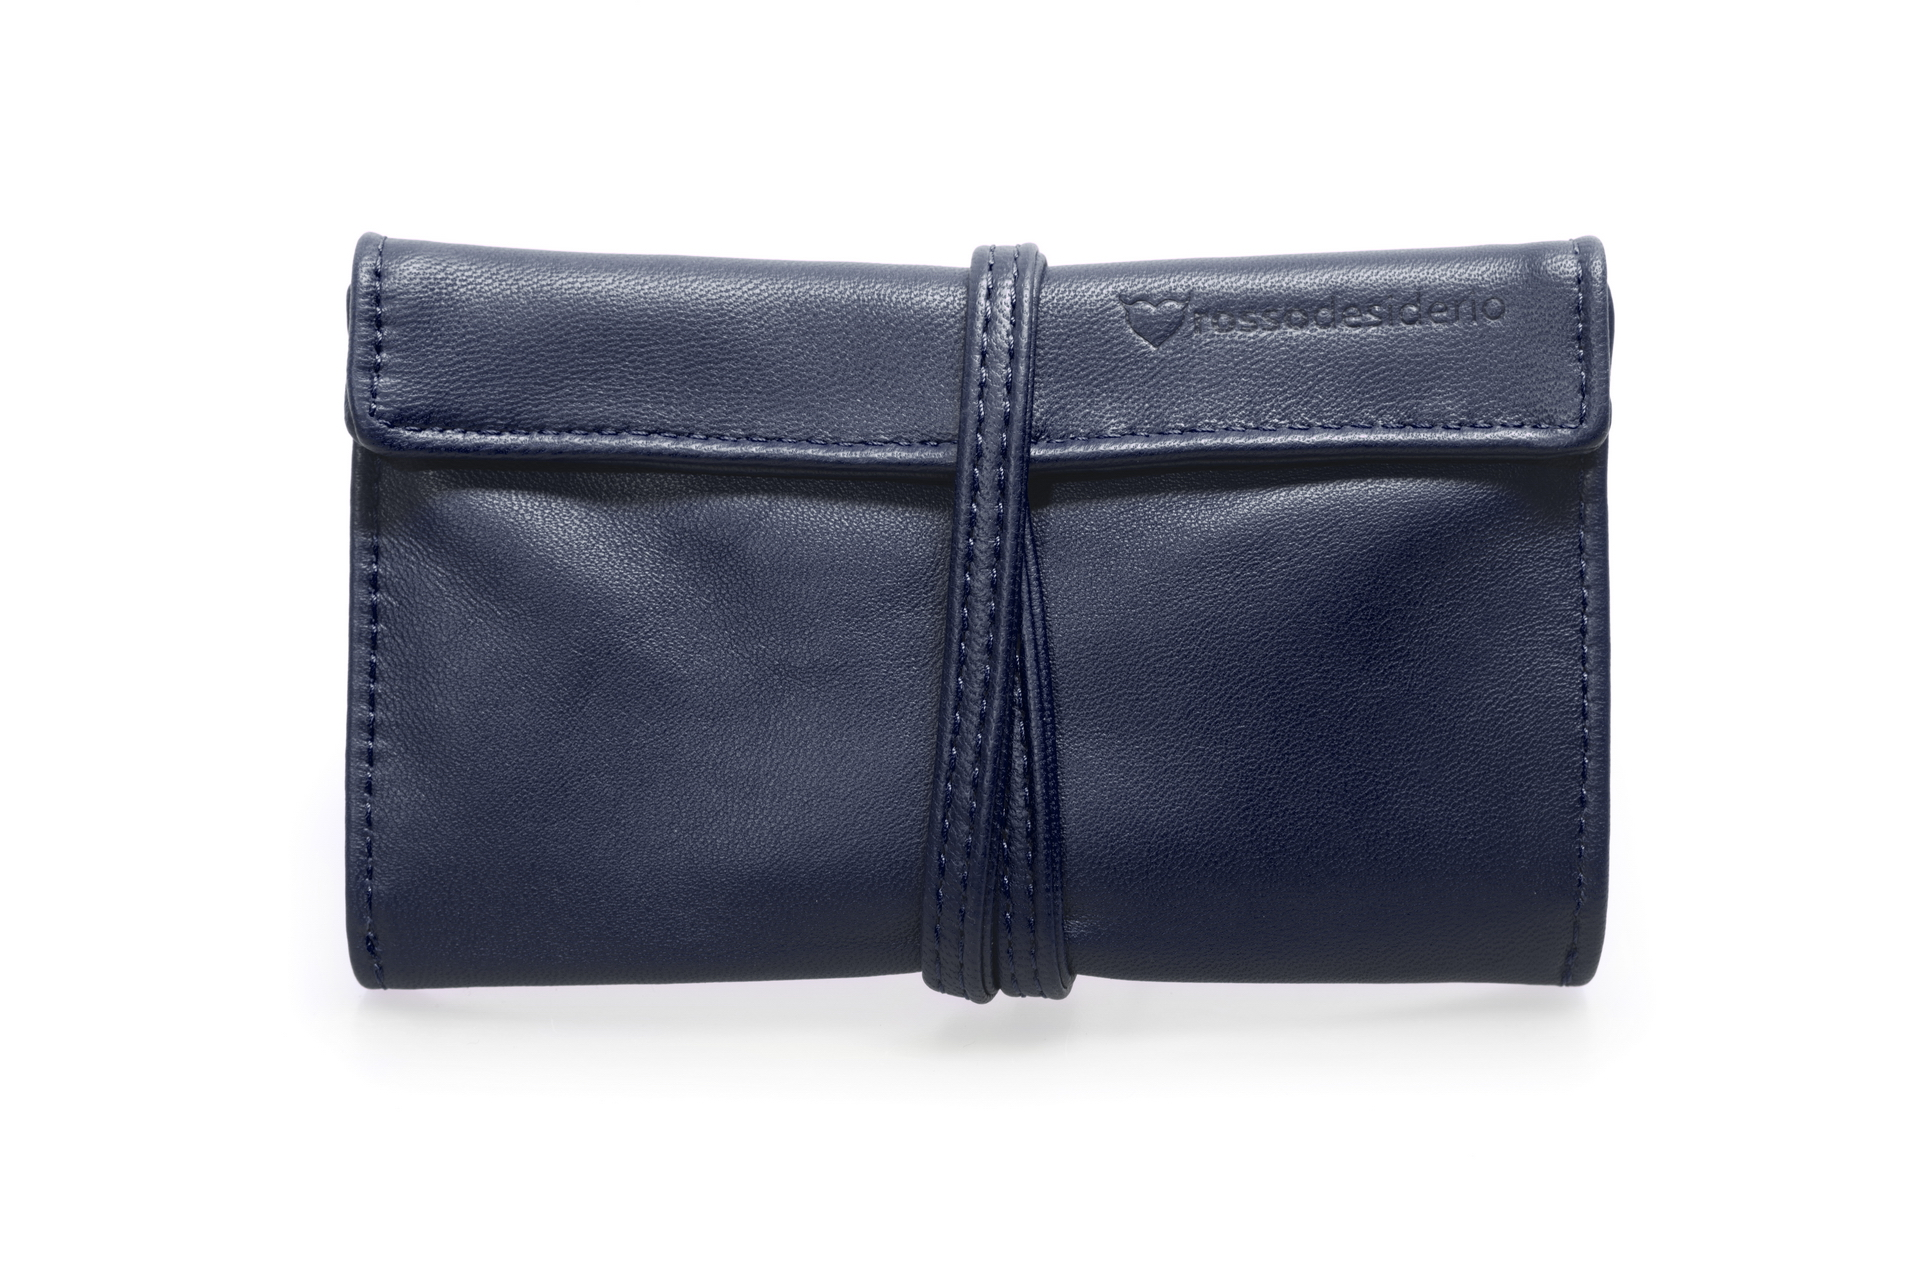 Real leather bleu tobacco pouch